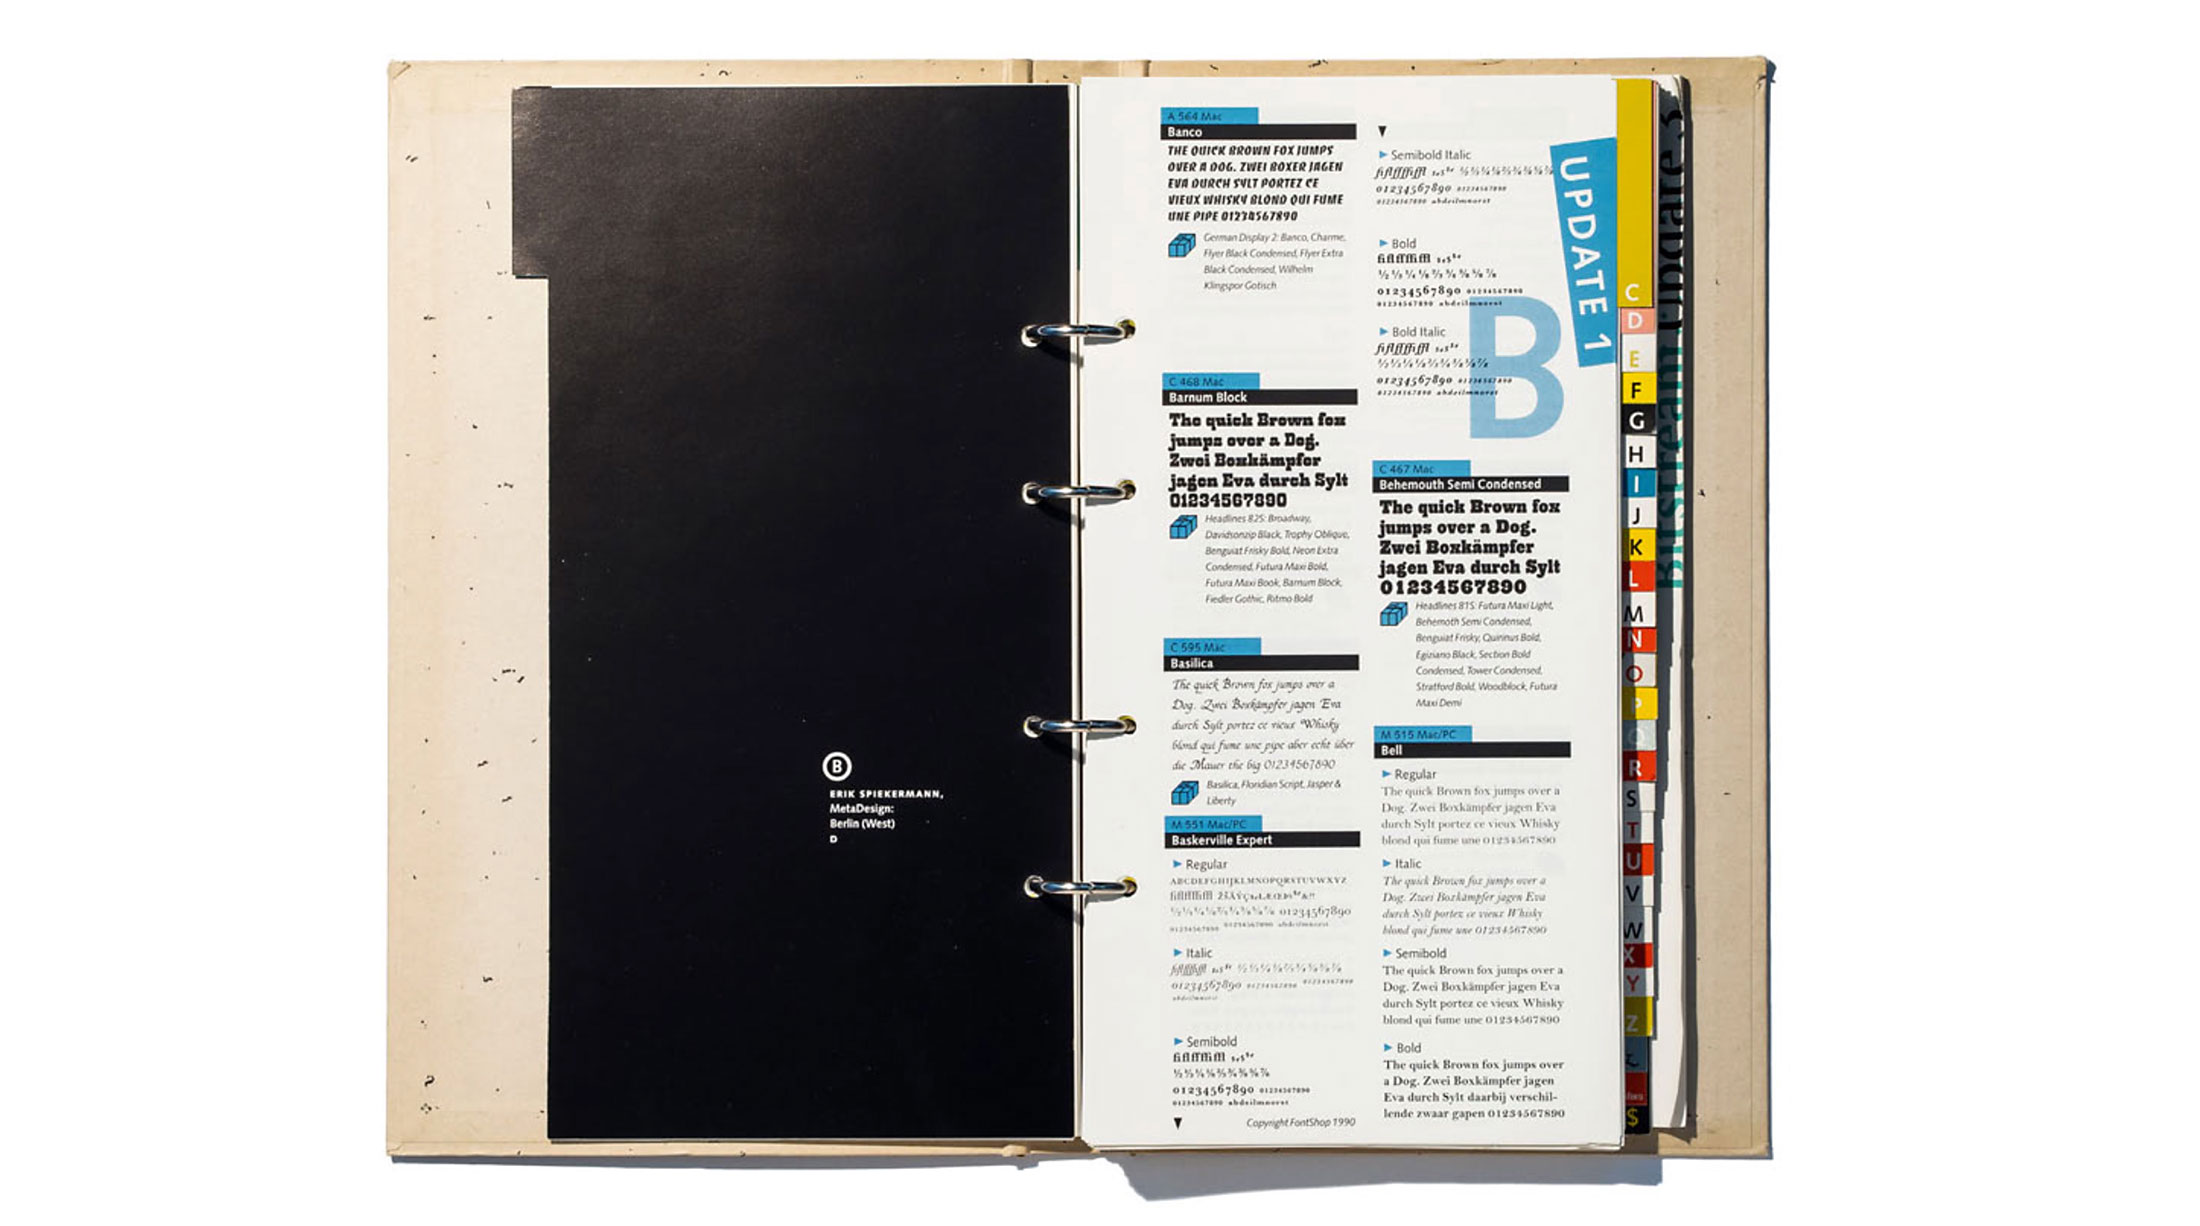 The first FontShop catalogue: a ring binder made of GDR cardboard, which was able to contain the quarterly font updates.